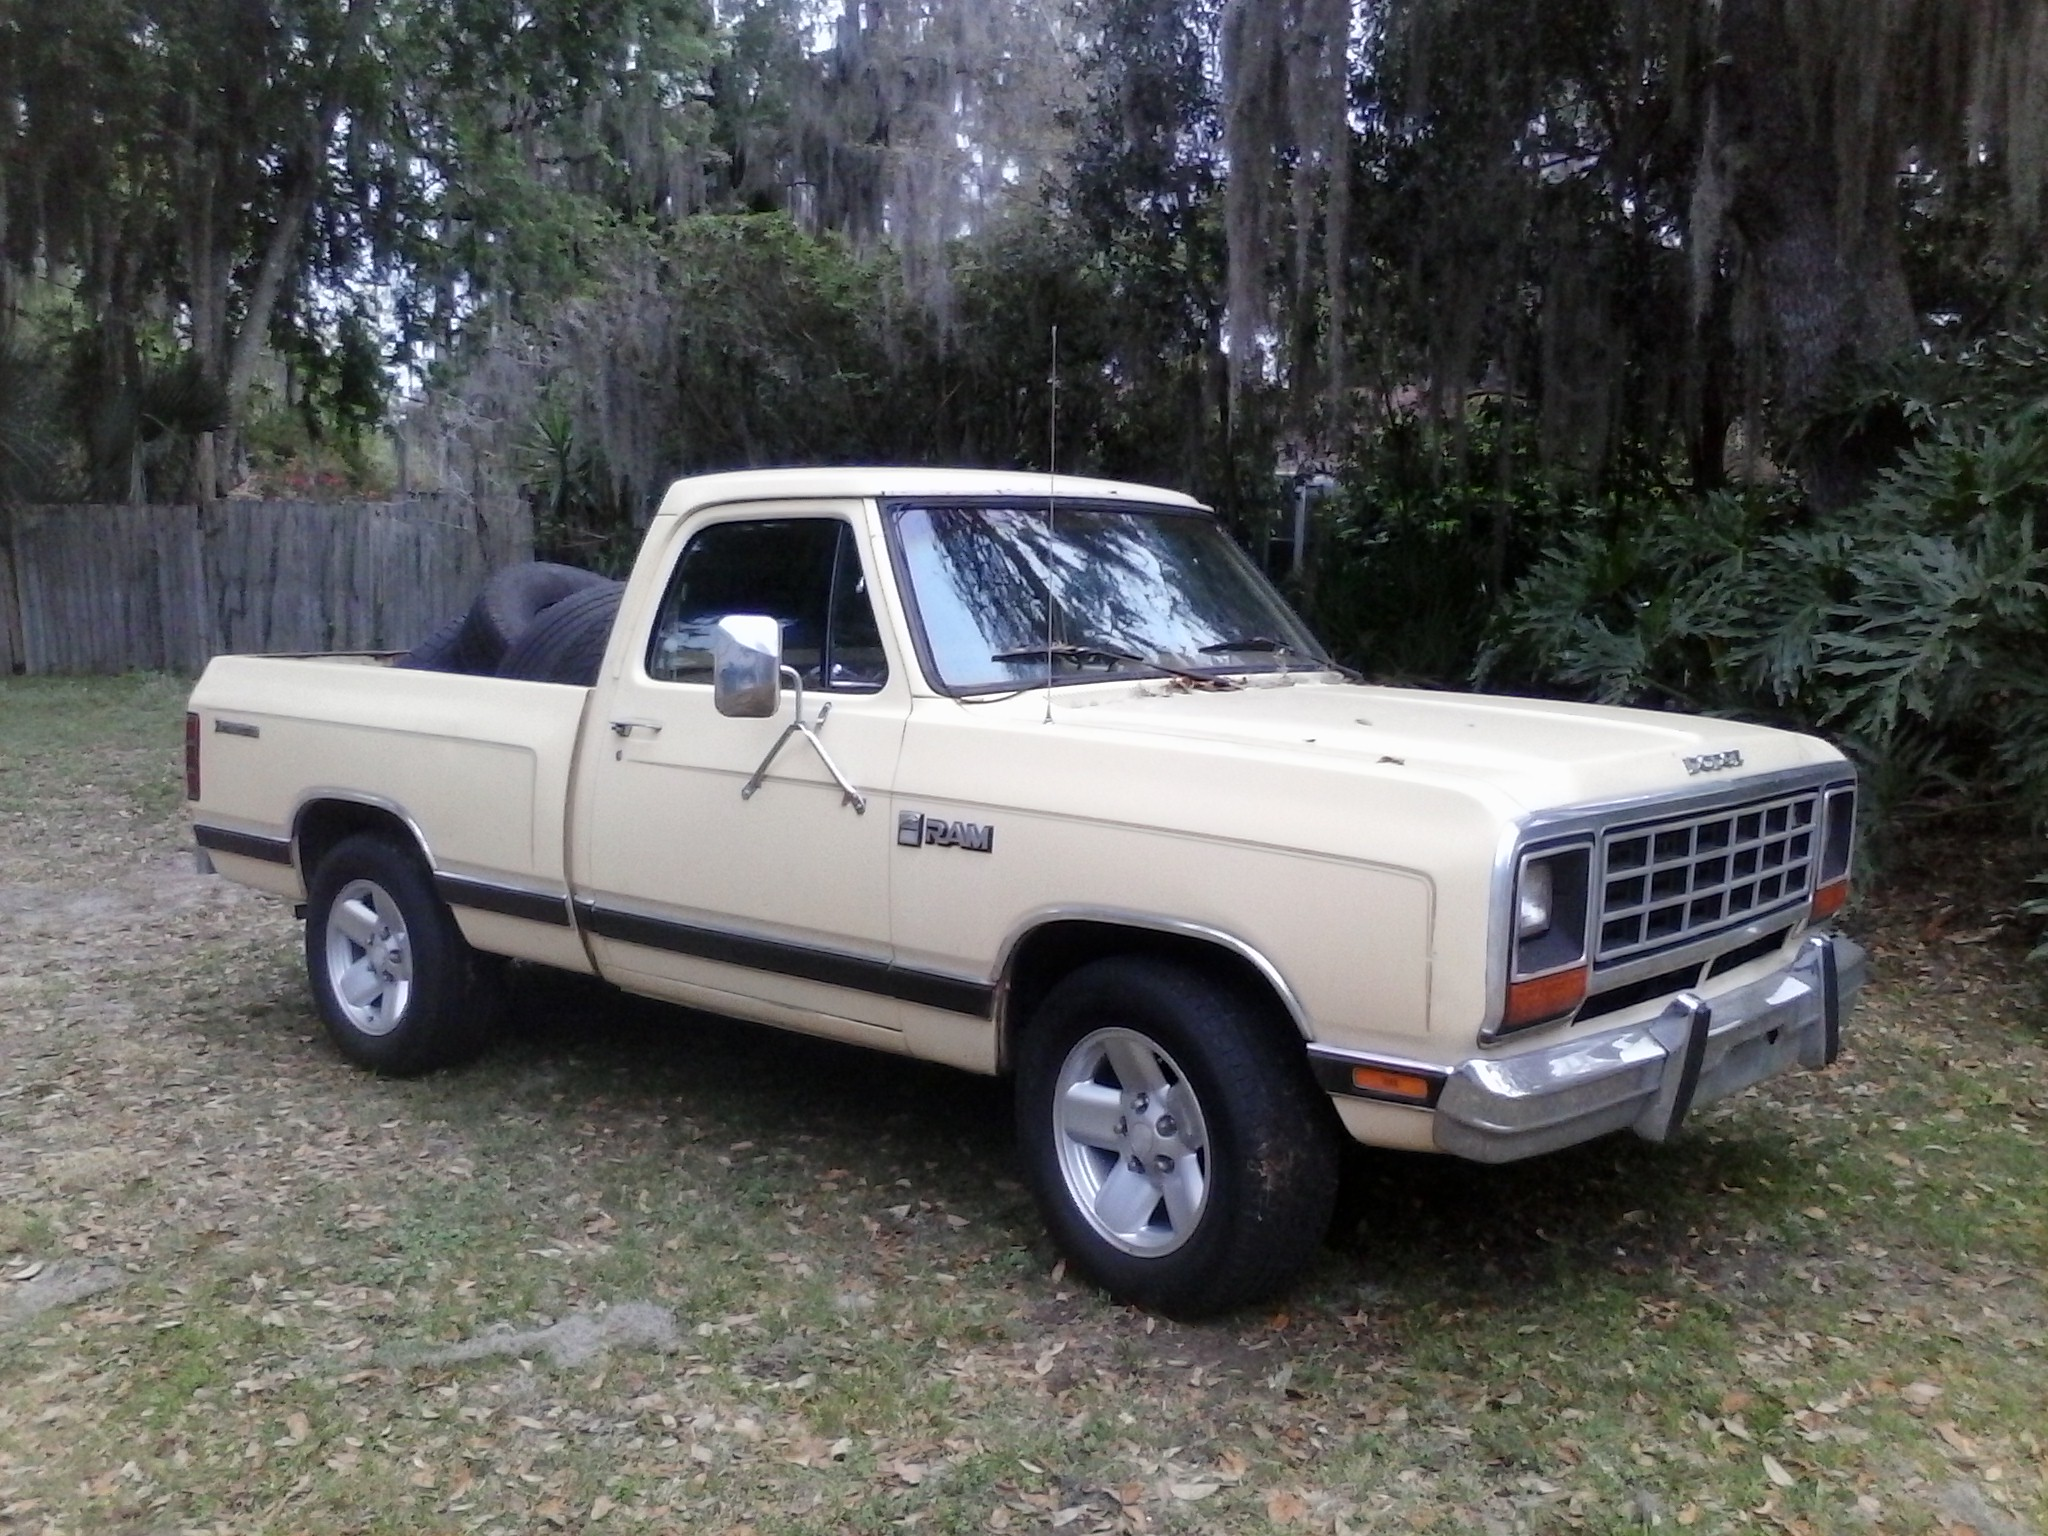 Central Florida Jeep Chrysler Dodge 1981 to 1993 Dodge Ram Trucks.....show what ya got ...